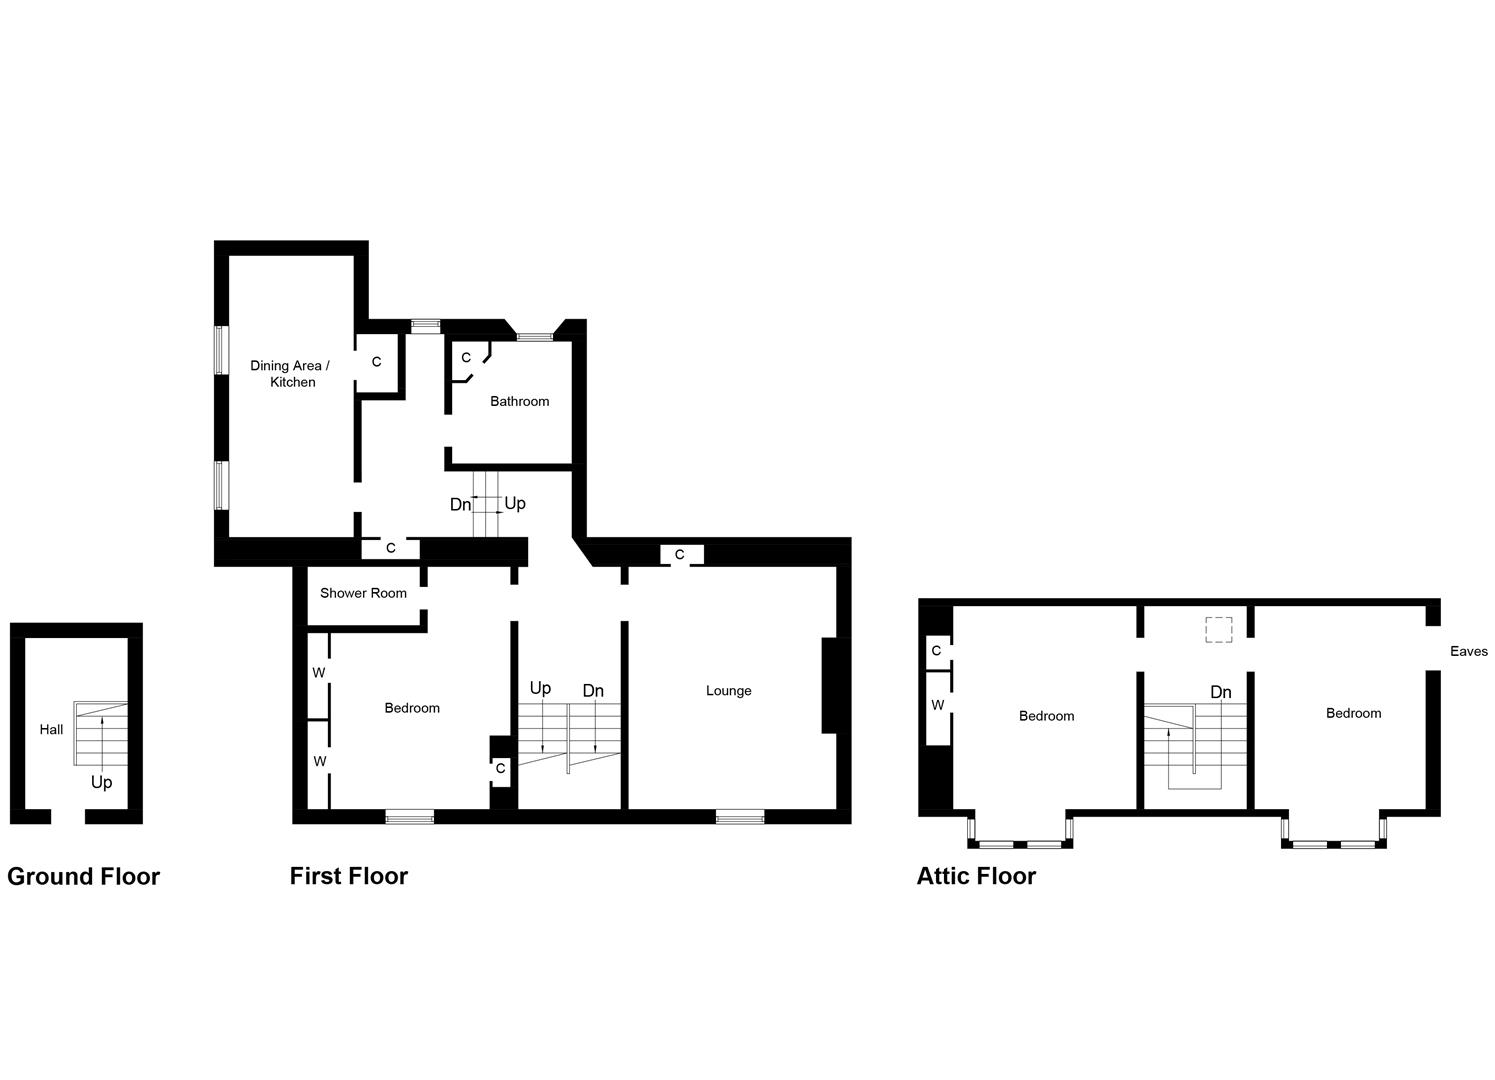 3 Bedroom Flat Diagram